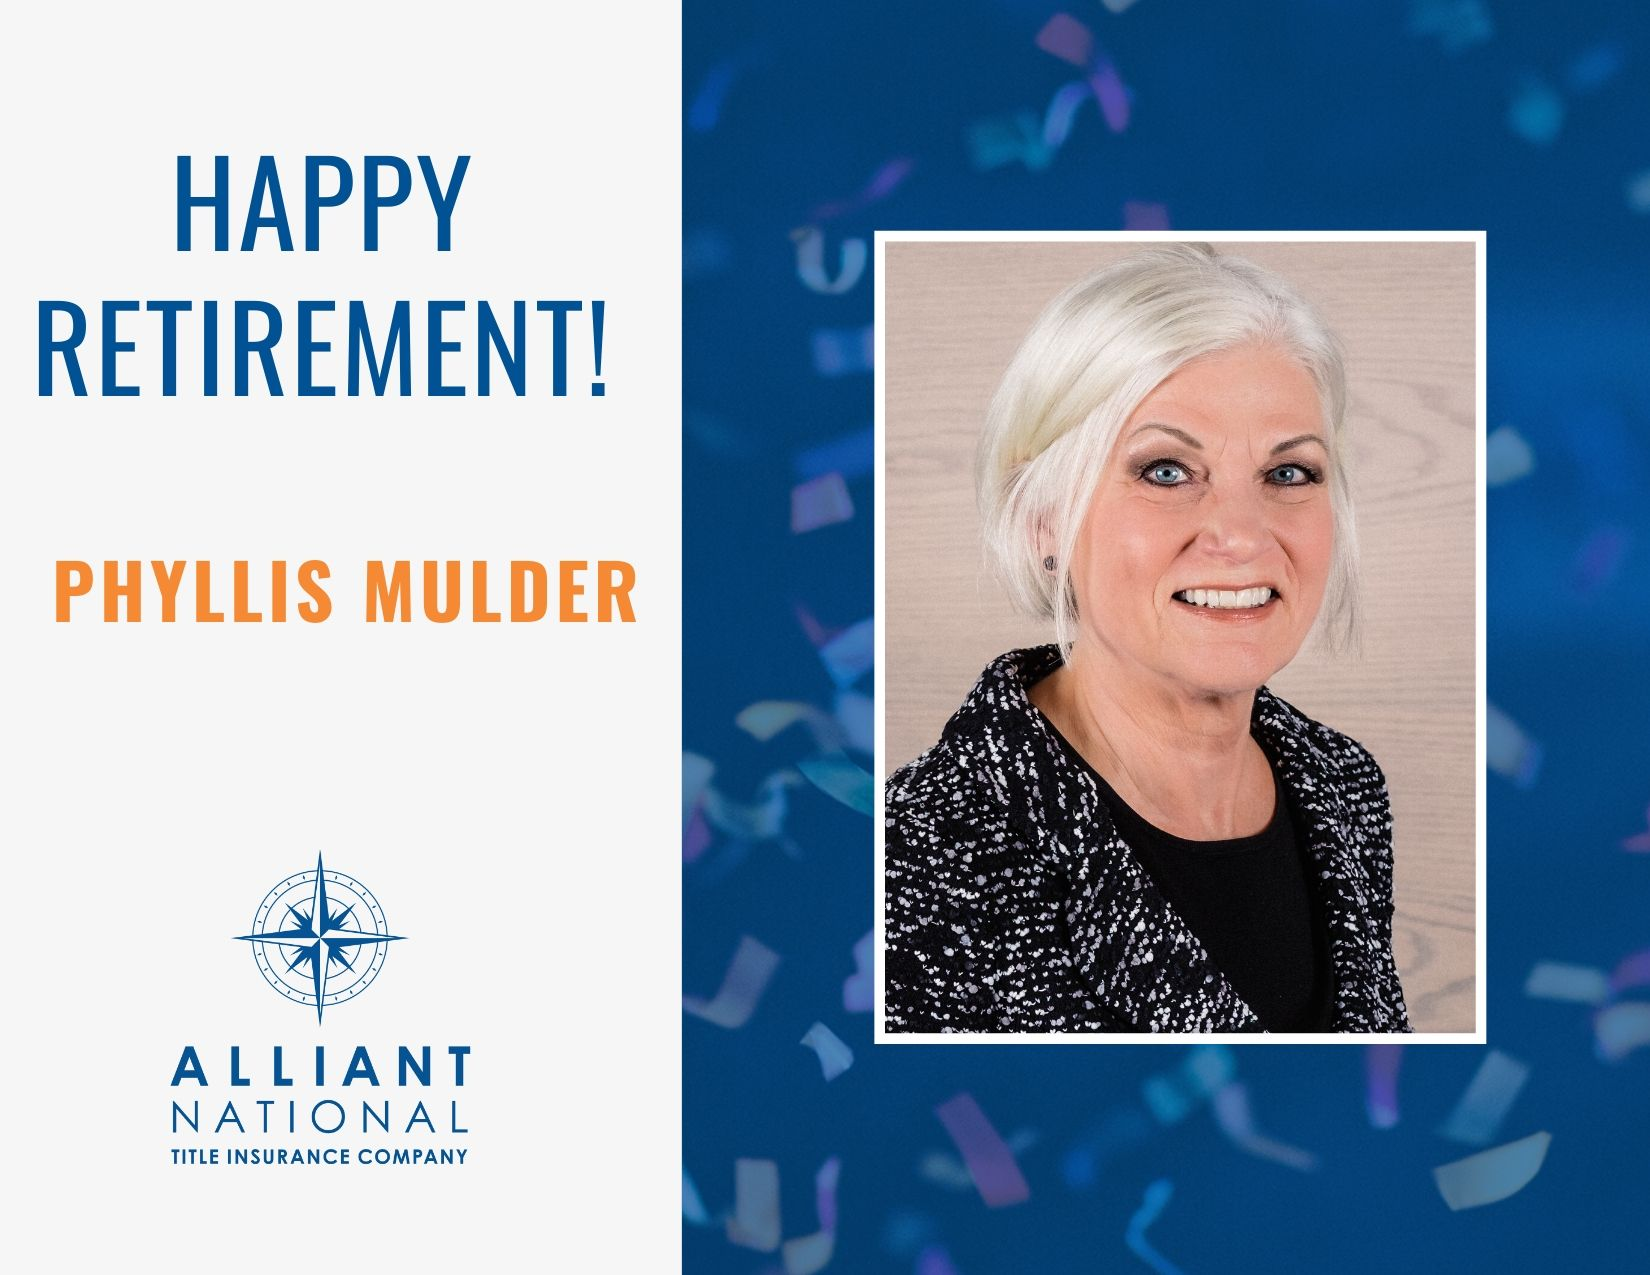 Happy Retirement - Phyllis Mulder